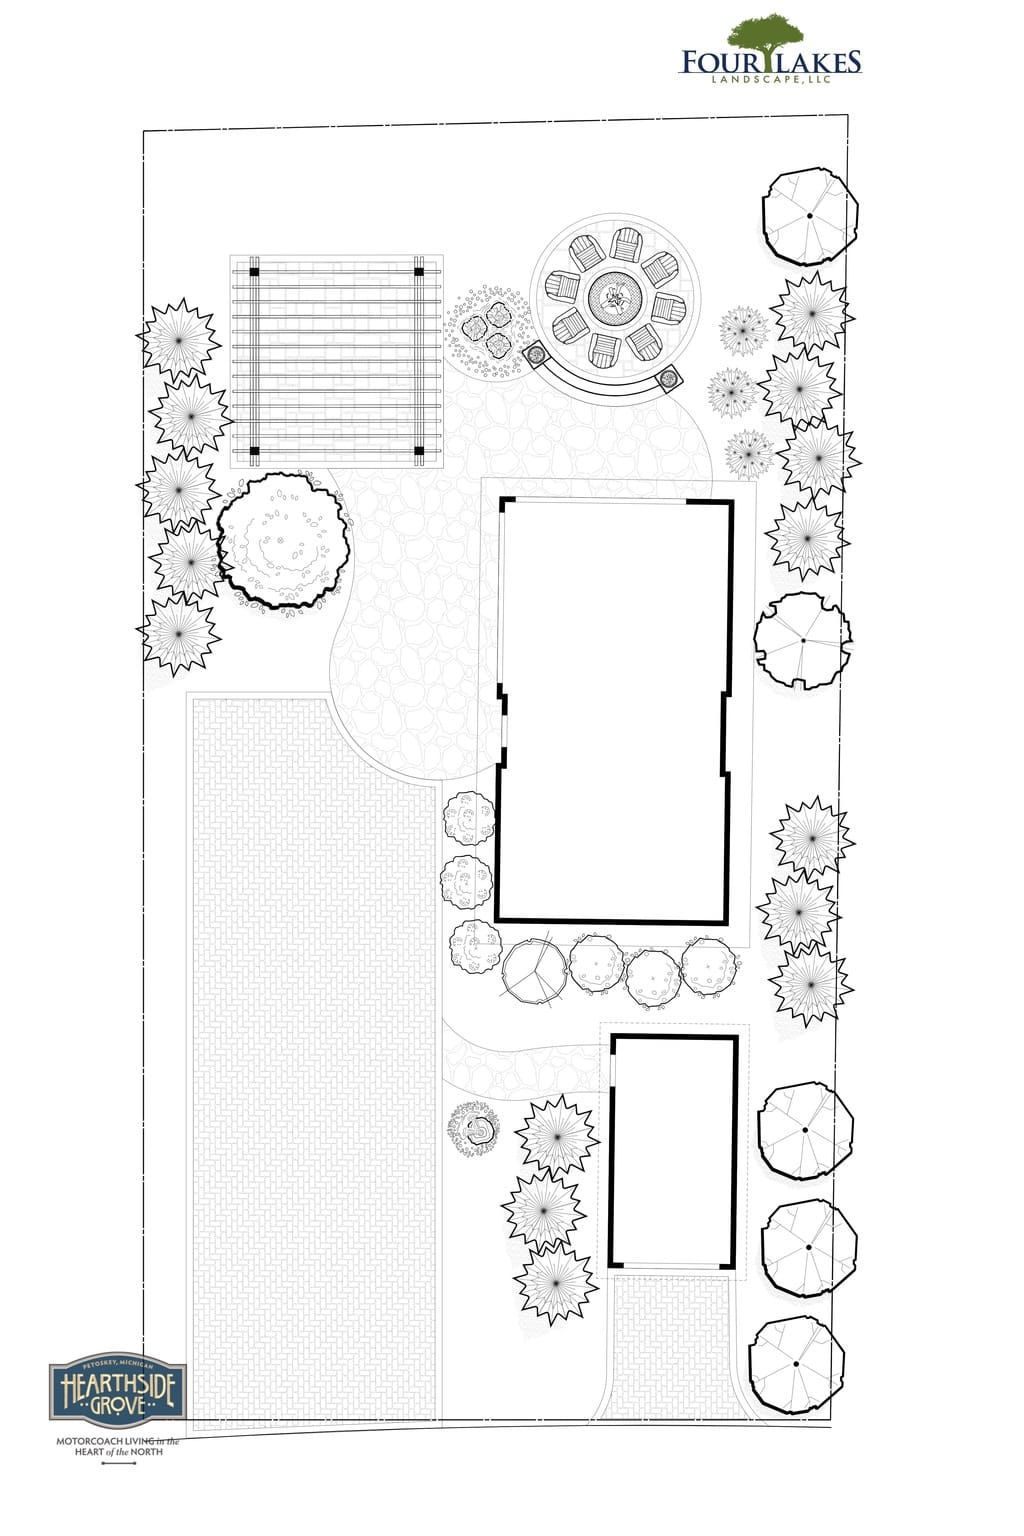 Hearthside Grove Motorcoach Resort Design - Lot 226